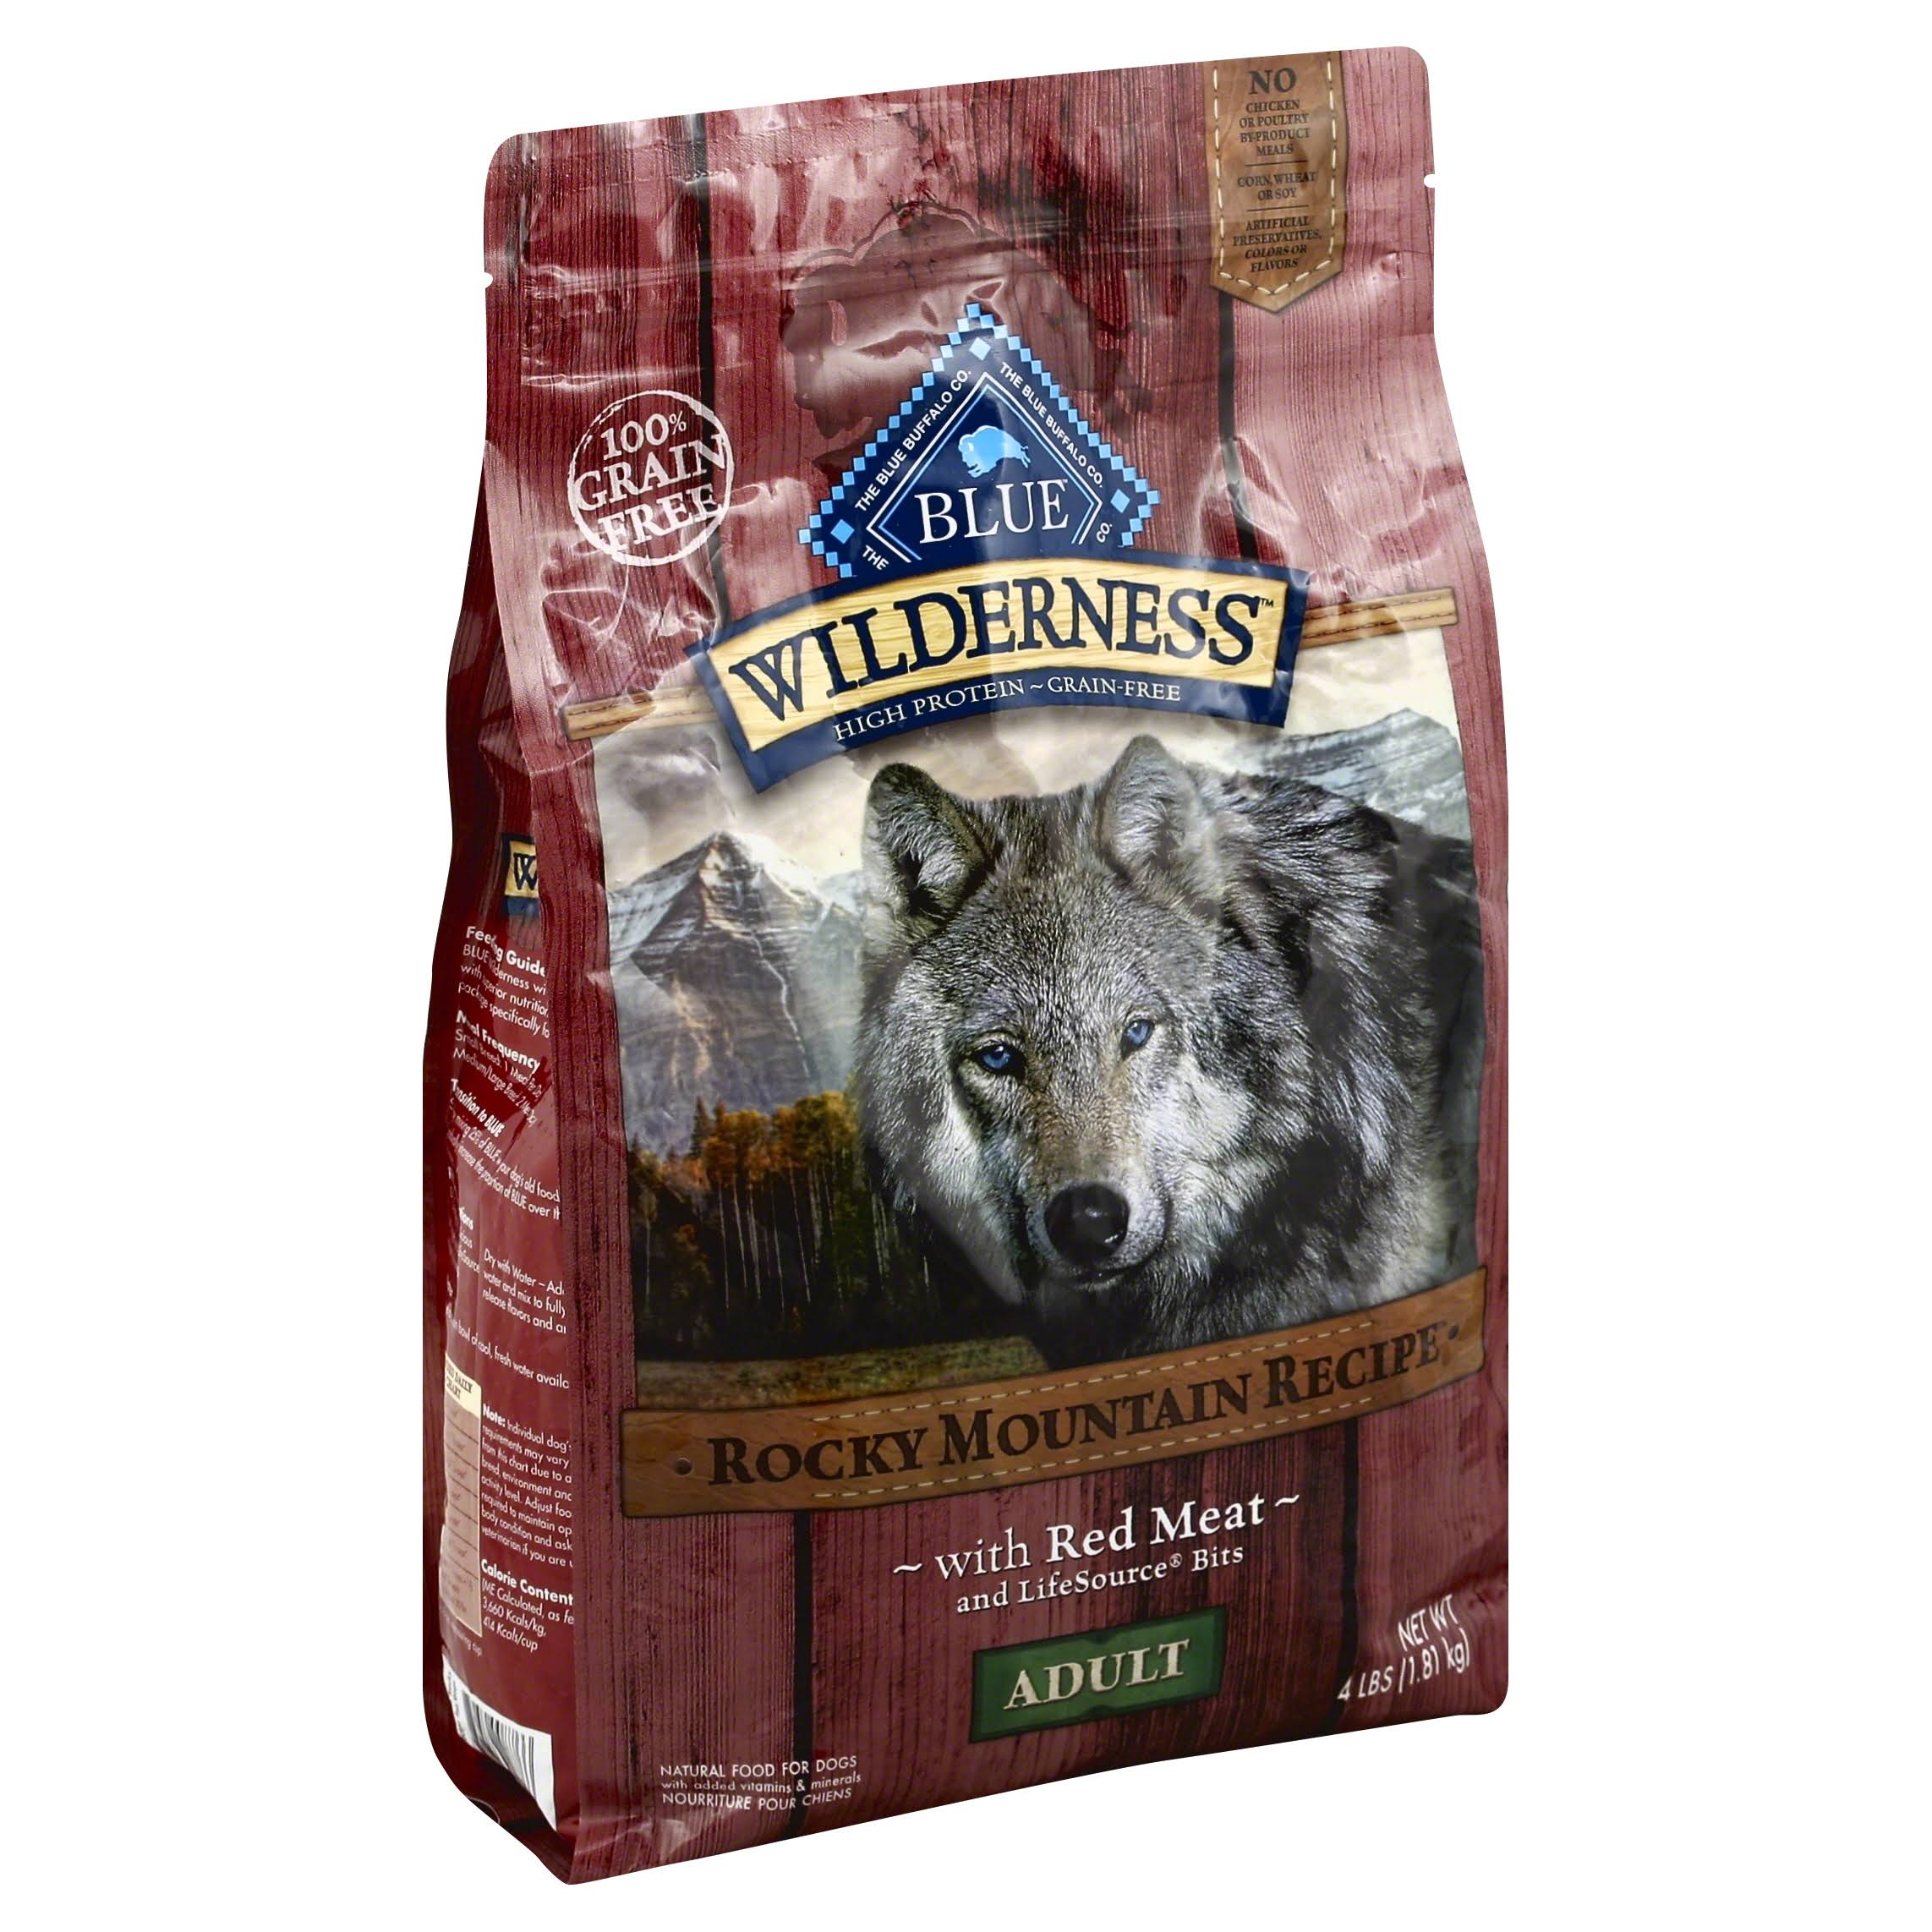 Blue Buffalo Wilderness Adult Dry Dog Food - Rocky Mountain Recipe with Red Meat, 4lb